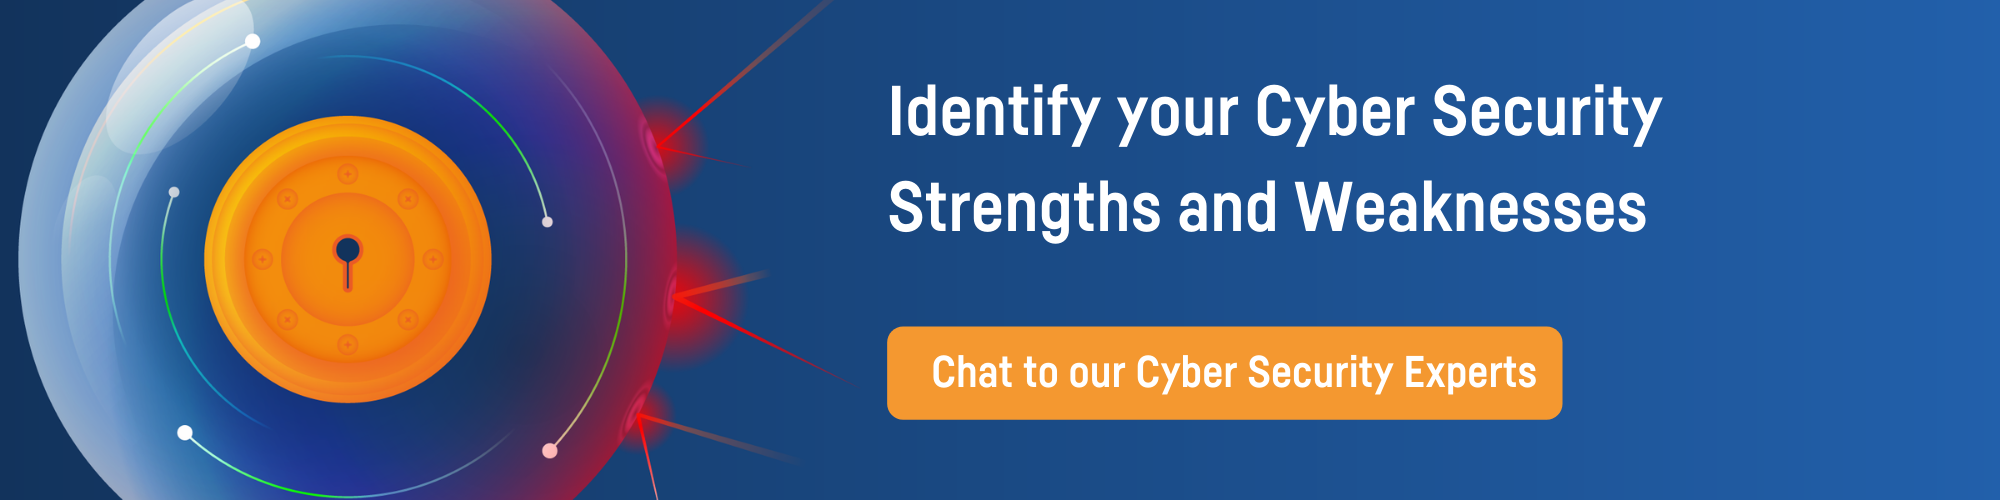 Identify Cyber Security Strengths & Weaknesses